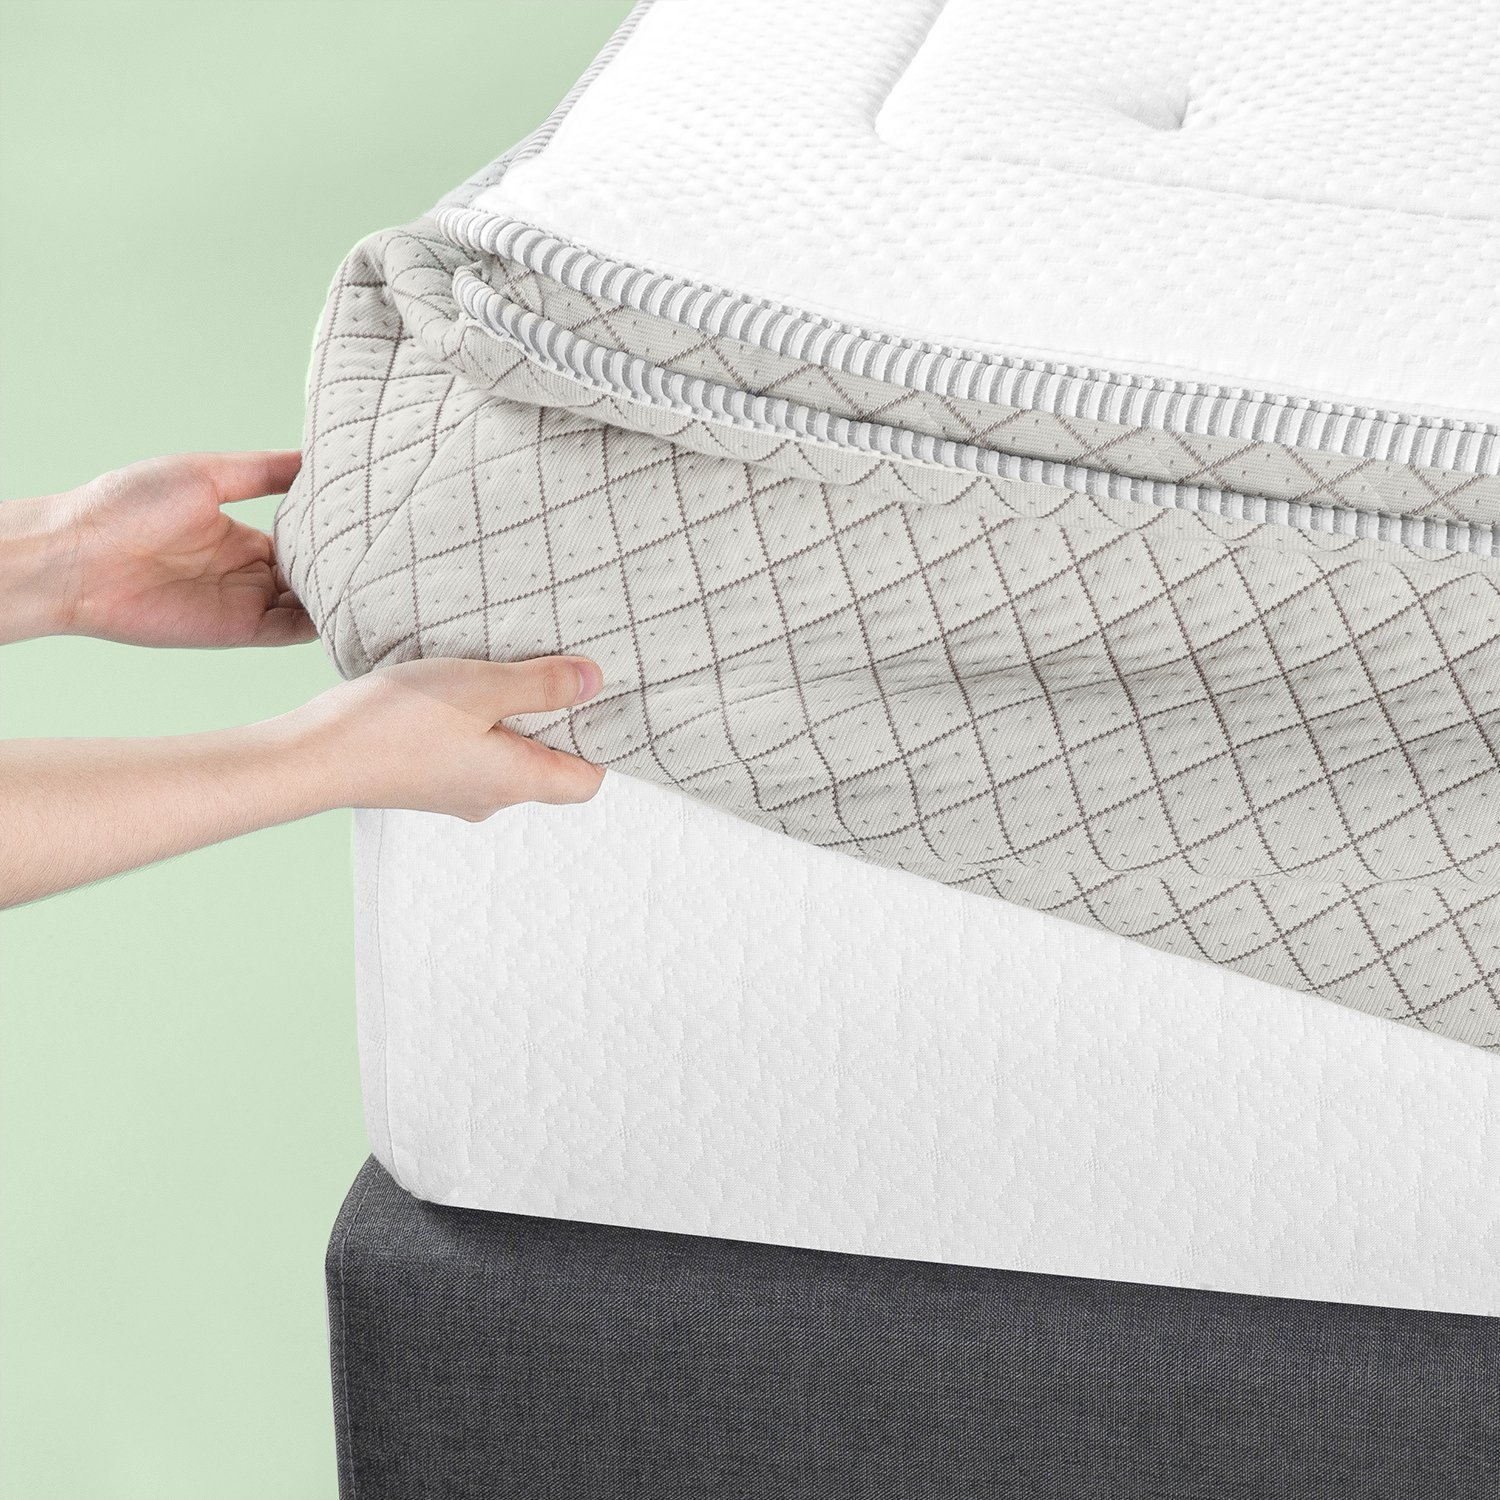 Zinus 2.5 Inch Green Tea Memory Foam Quilted Mattress Pad for Mattresses 12 Inches and under, Mattress Topper Rejuvenator, King